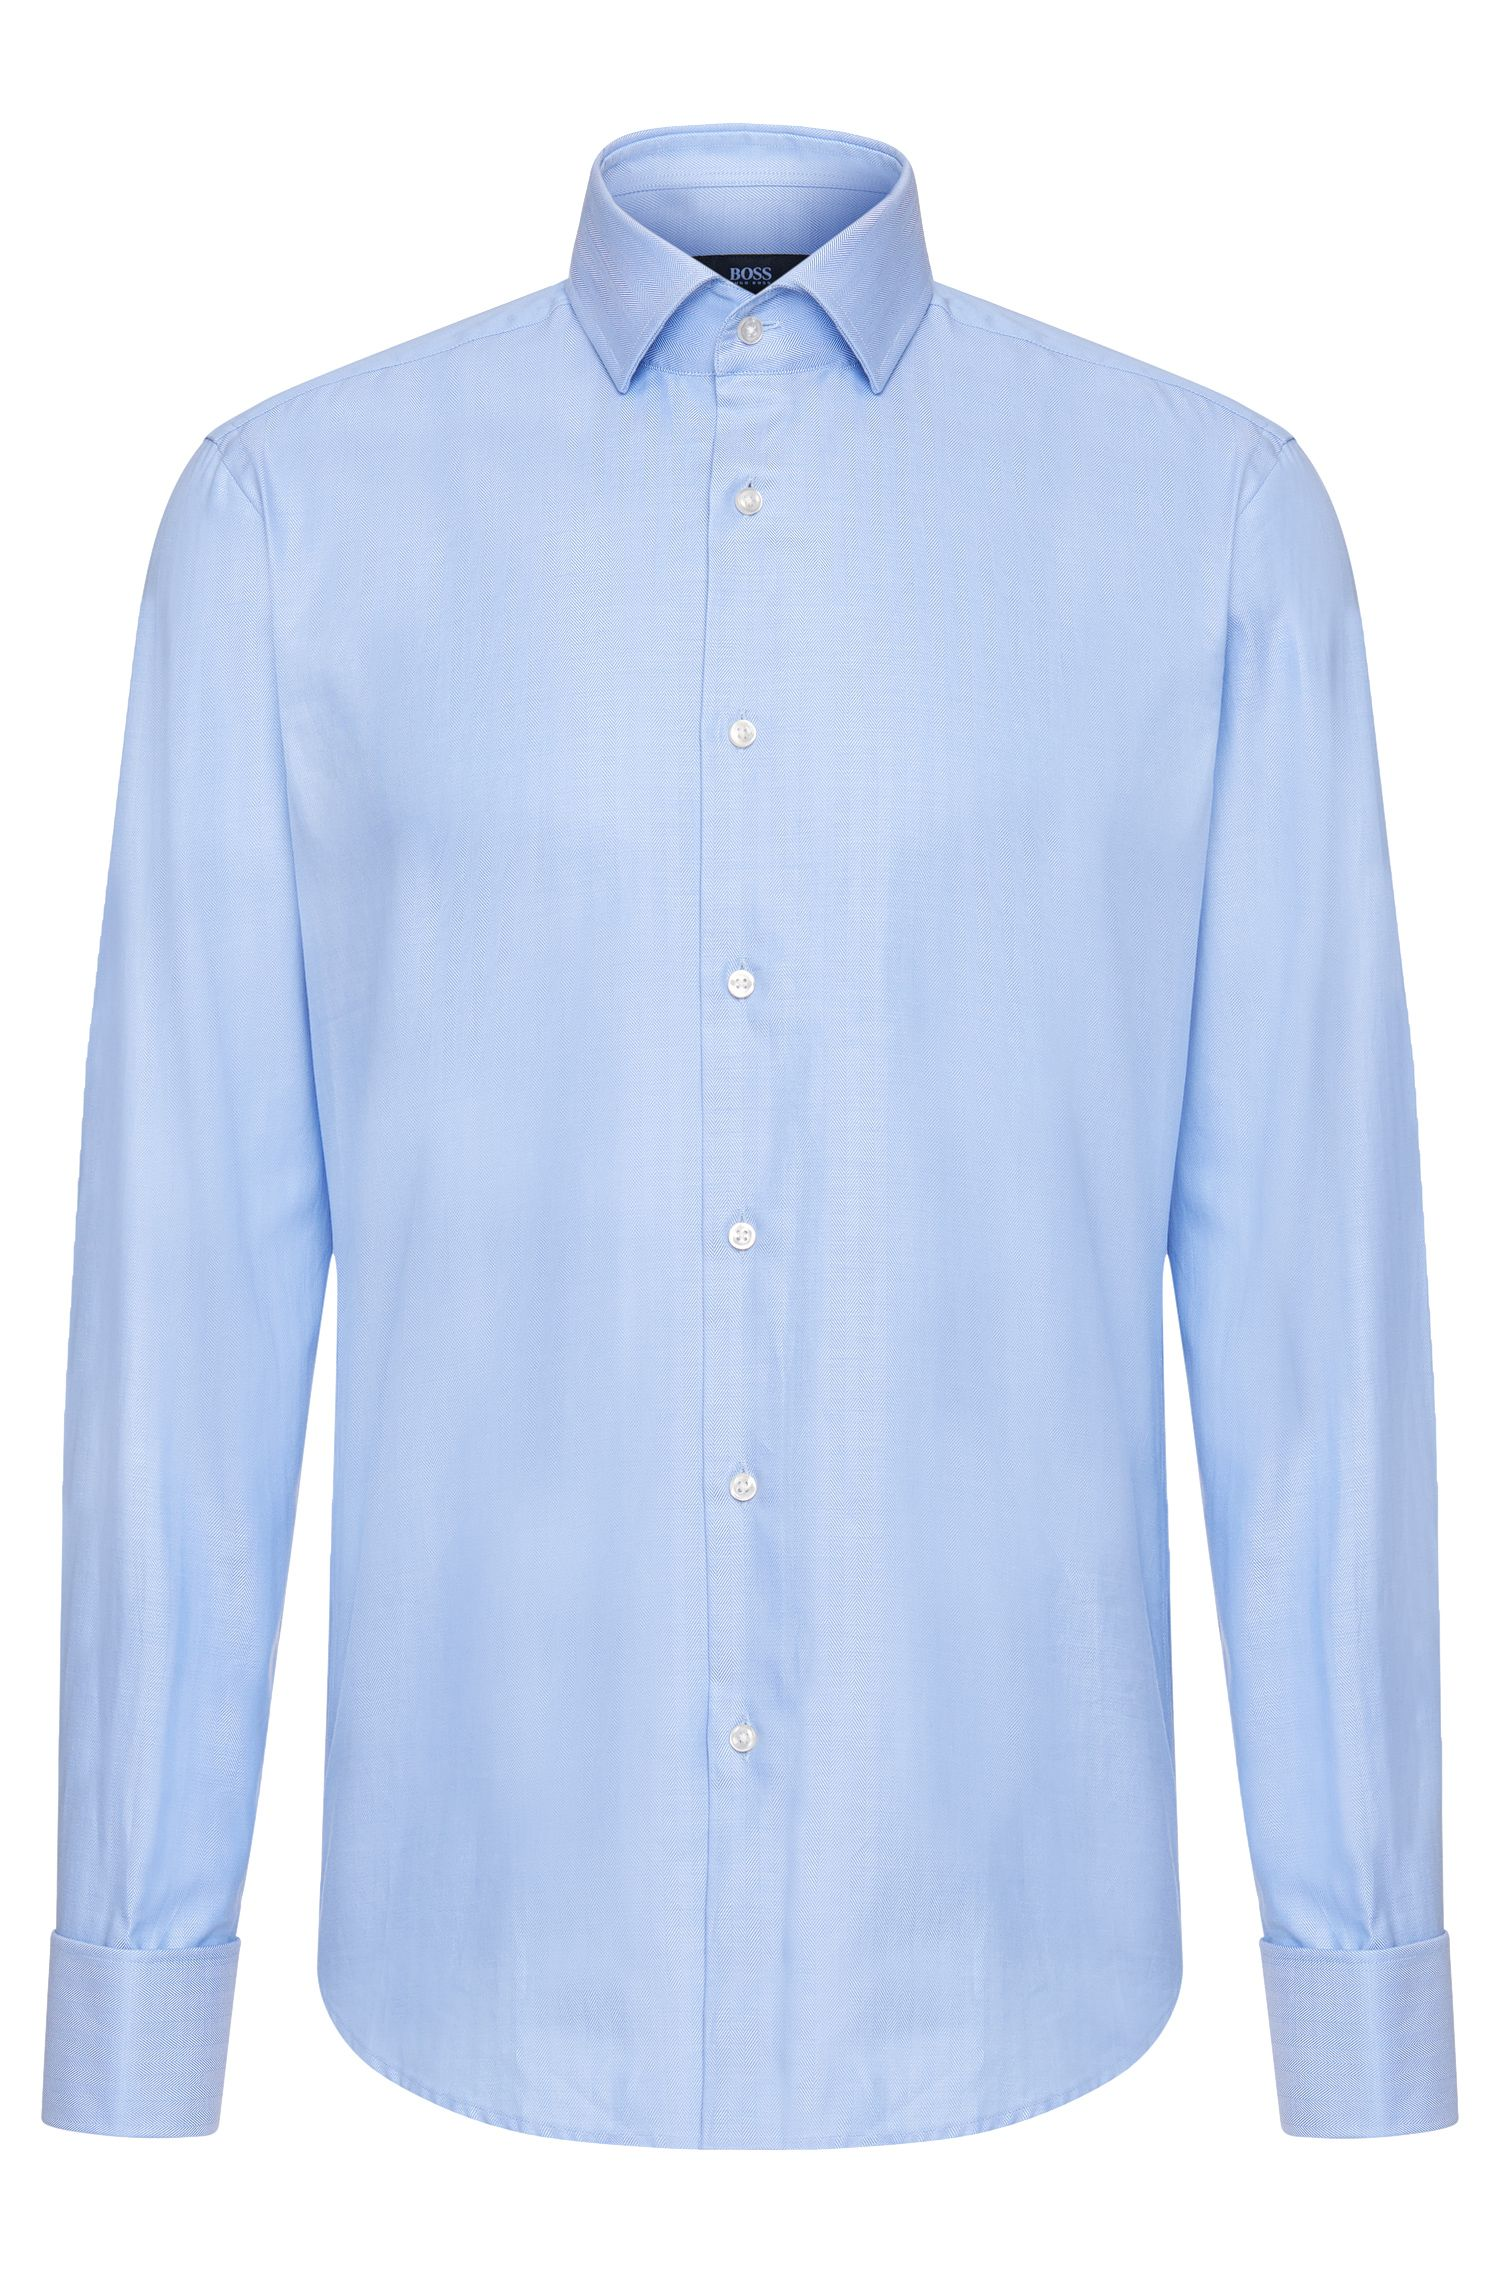 'Gardner' | Regular Fit, Italian Cotton Dress Shirt